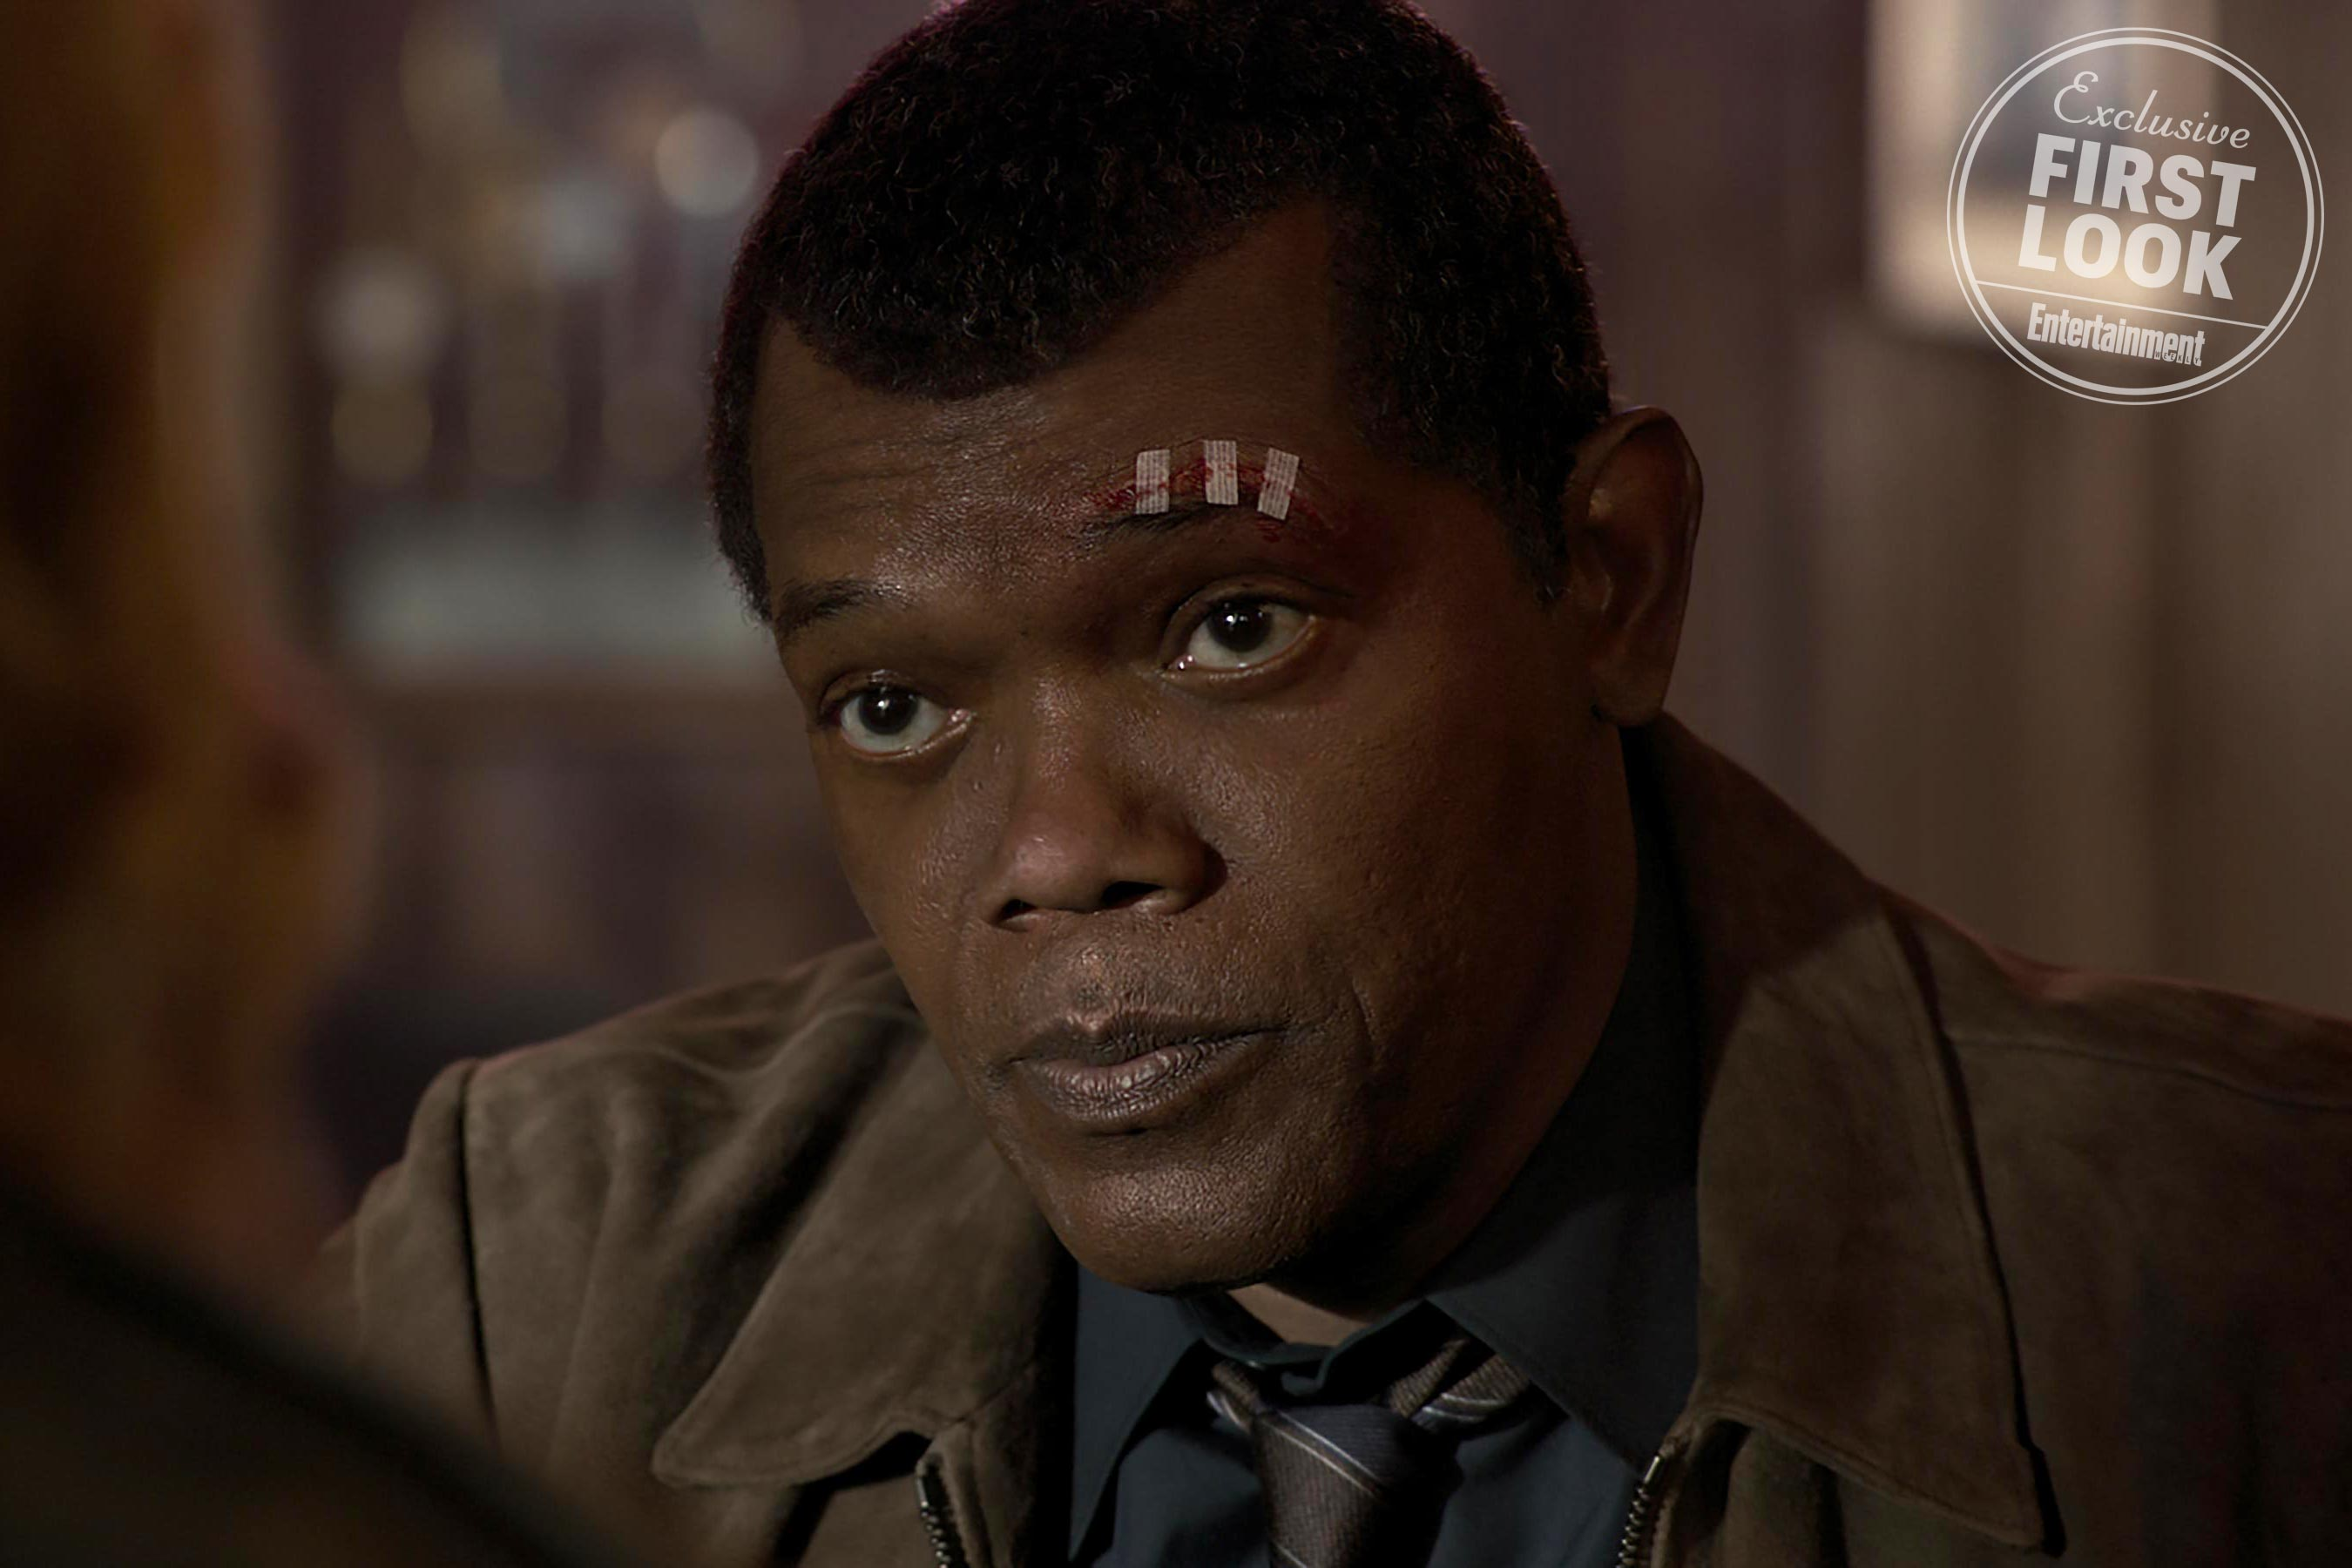 Photo du film Captain Marvel avec Samuel L. Jackson dans le rôle de Nick Fury